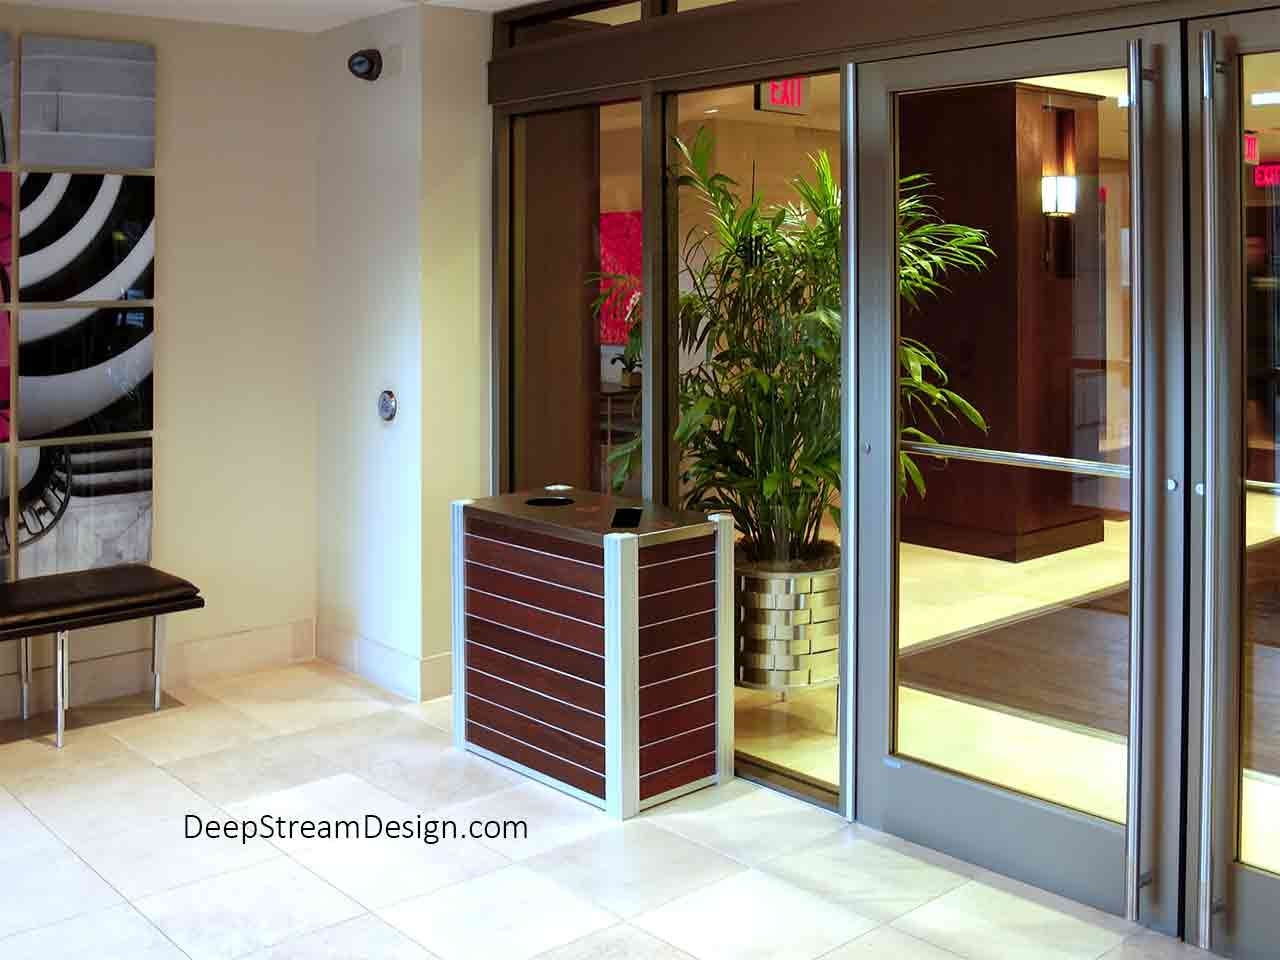 A small boutique hotel lobby filled with art looks more like the entrance to swanky private club, a perfect place for a DeepStream Audubon dual-stream modern commercial combined recycling and trash receptacle with dark Ipe Wood panels separated by Zephyr aluminum bands.